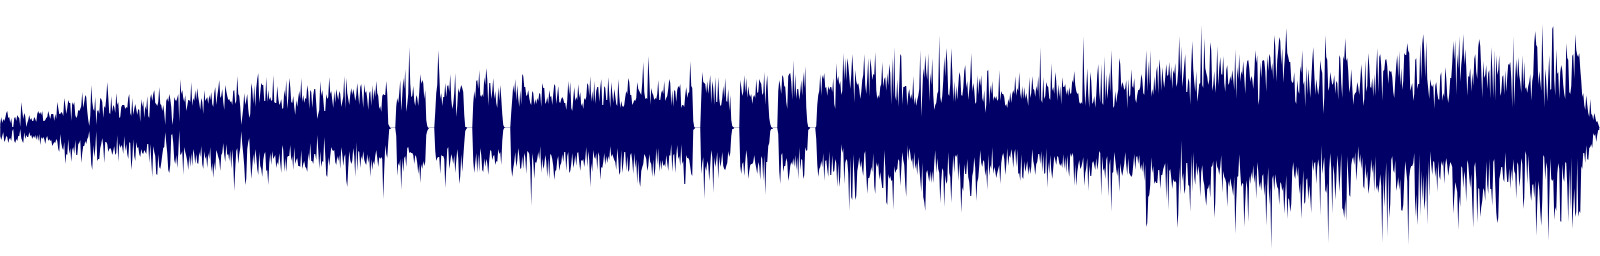 waveform of track #141257